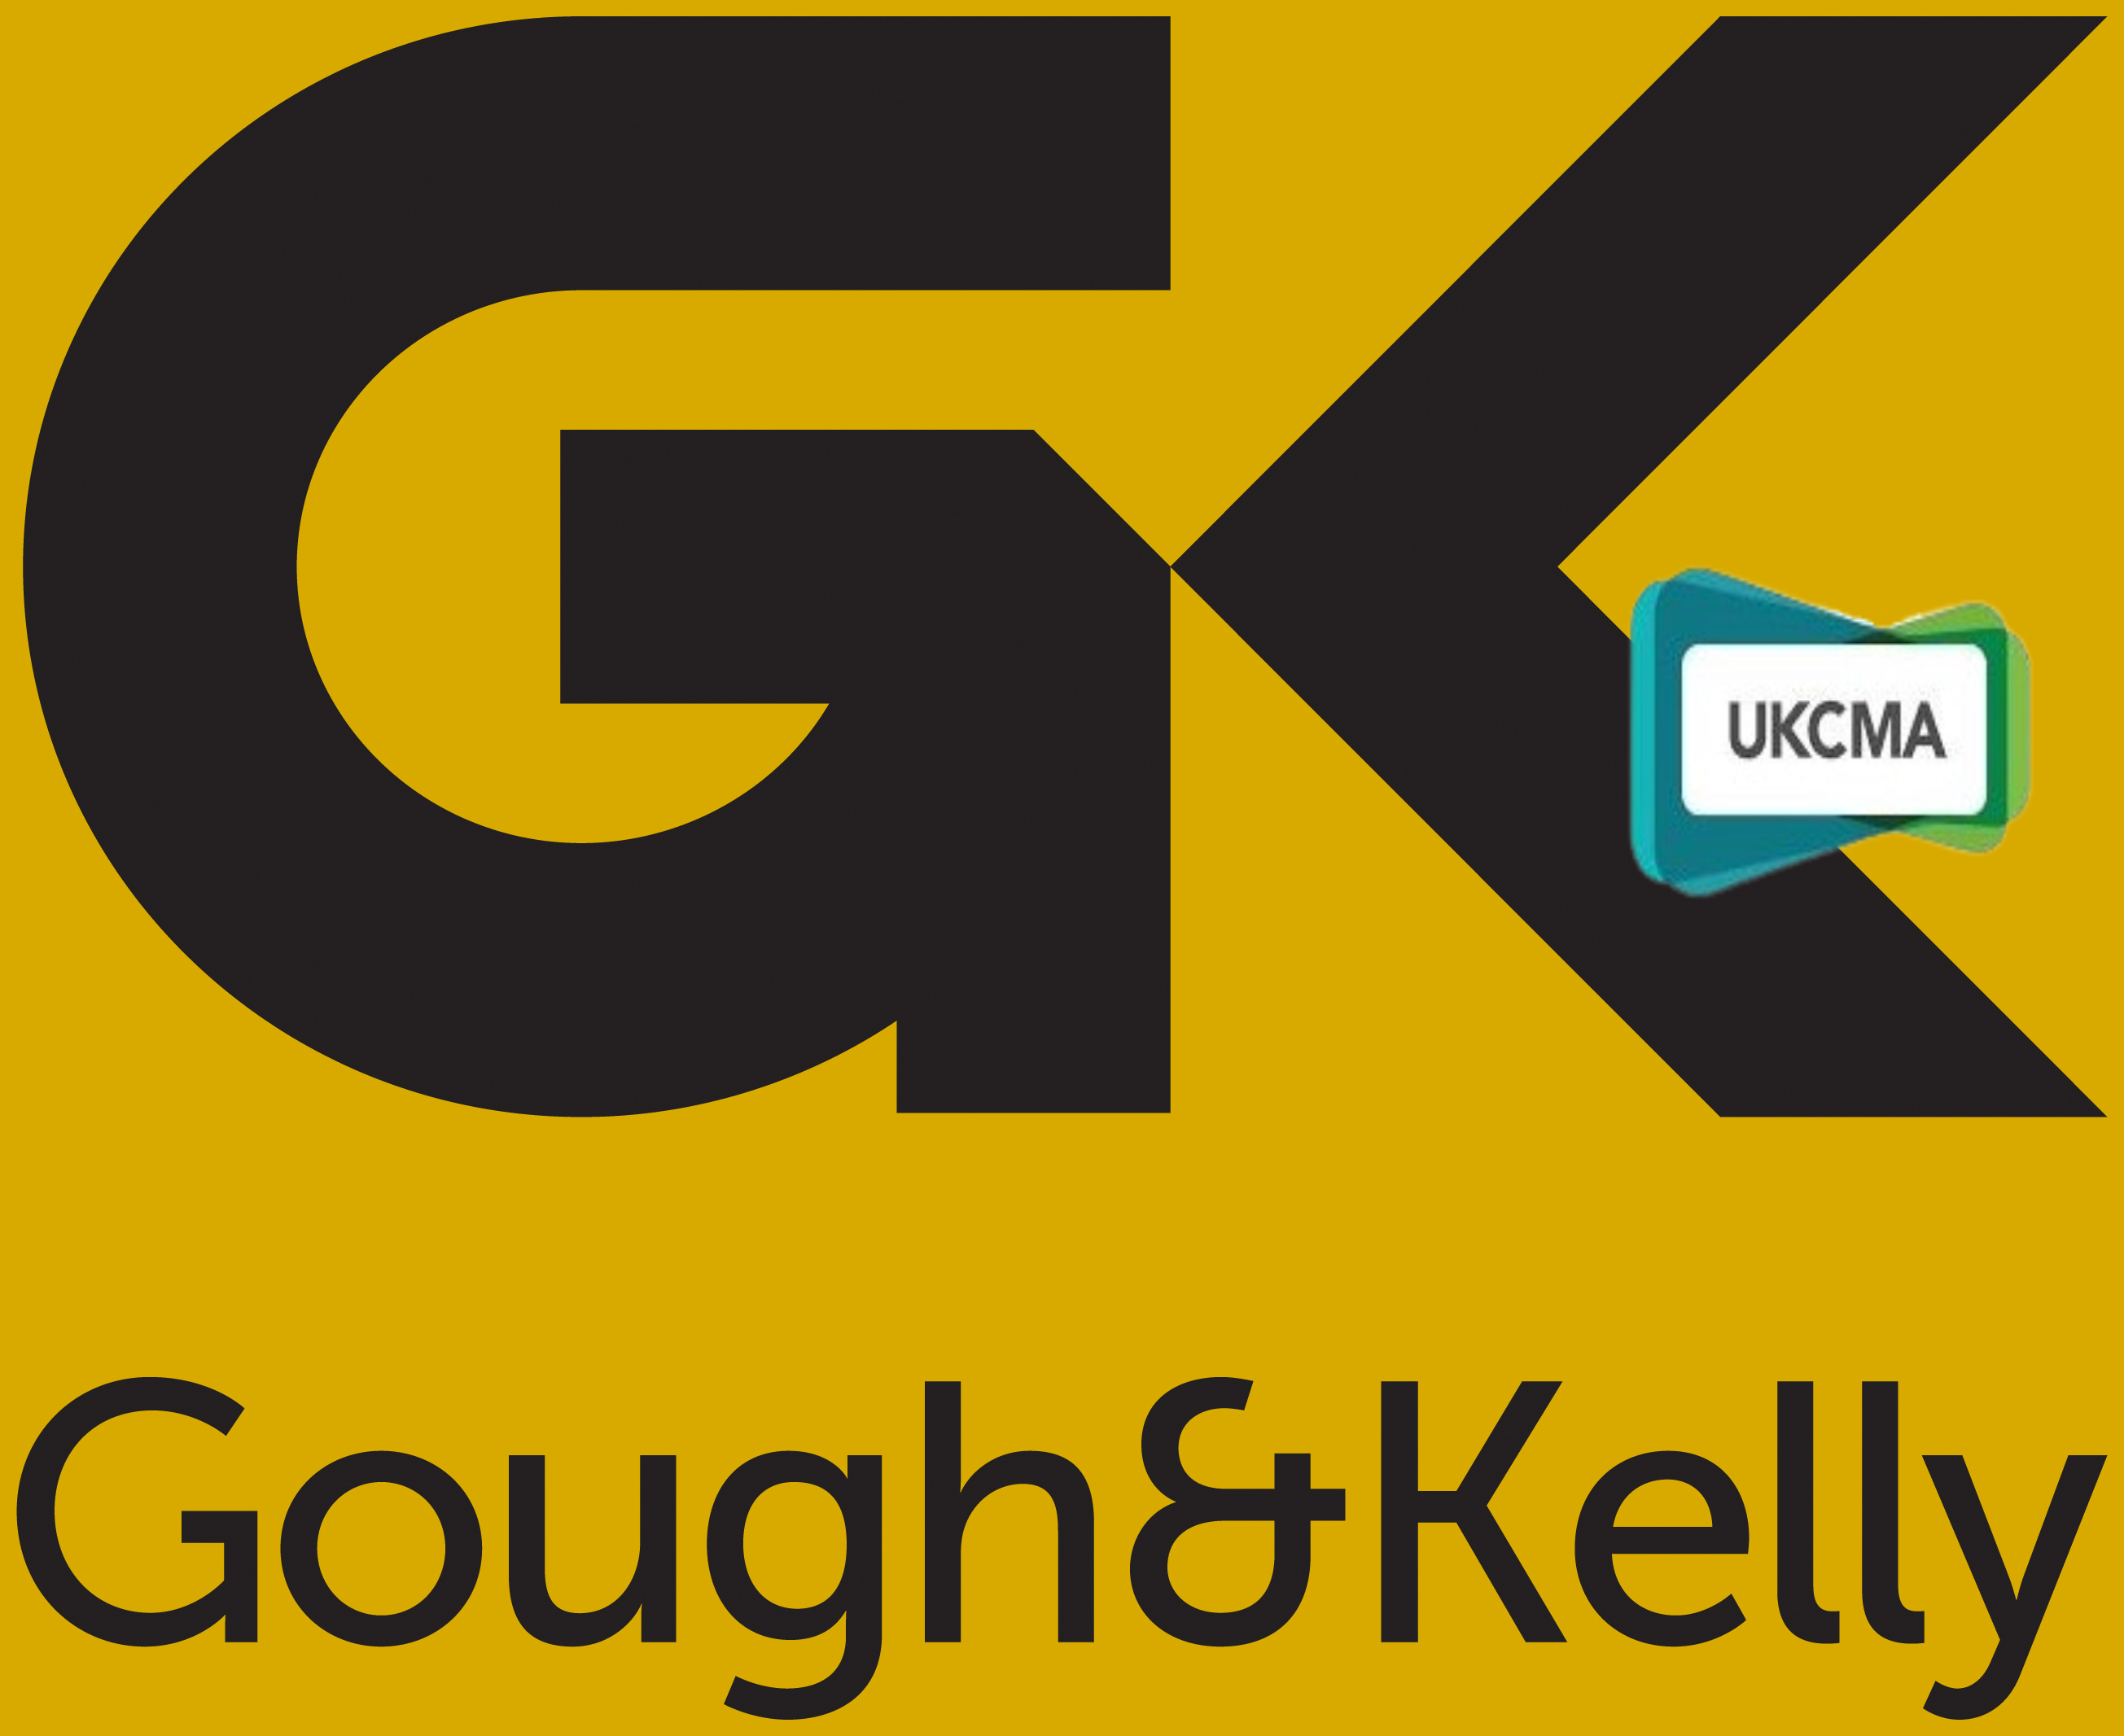 Gough and Kelly accepted as full member of the UKCMA